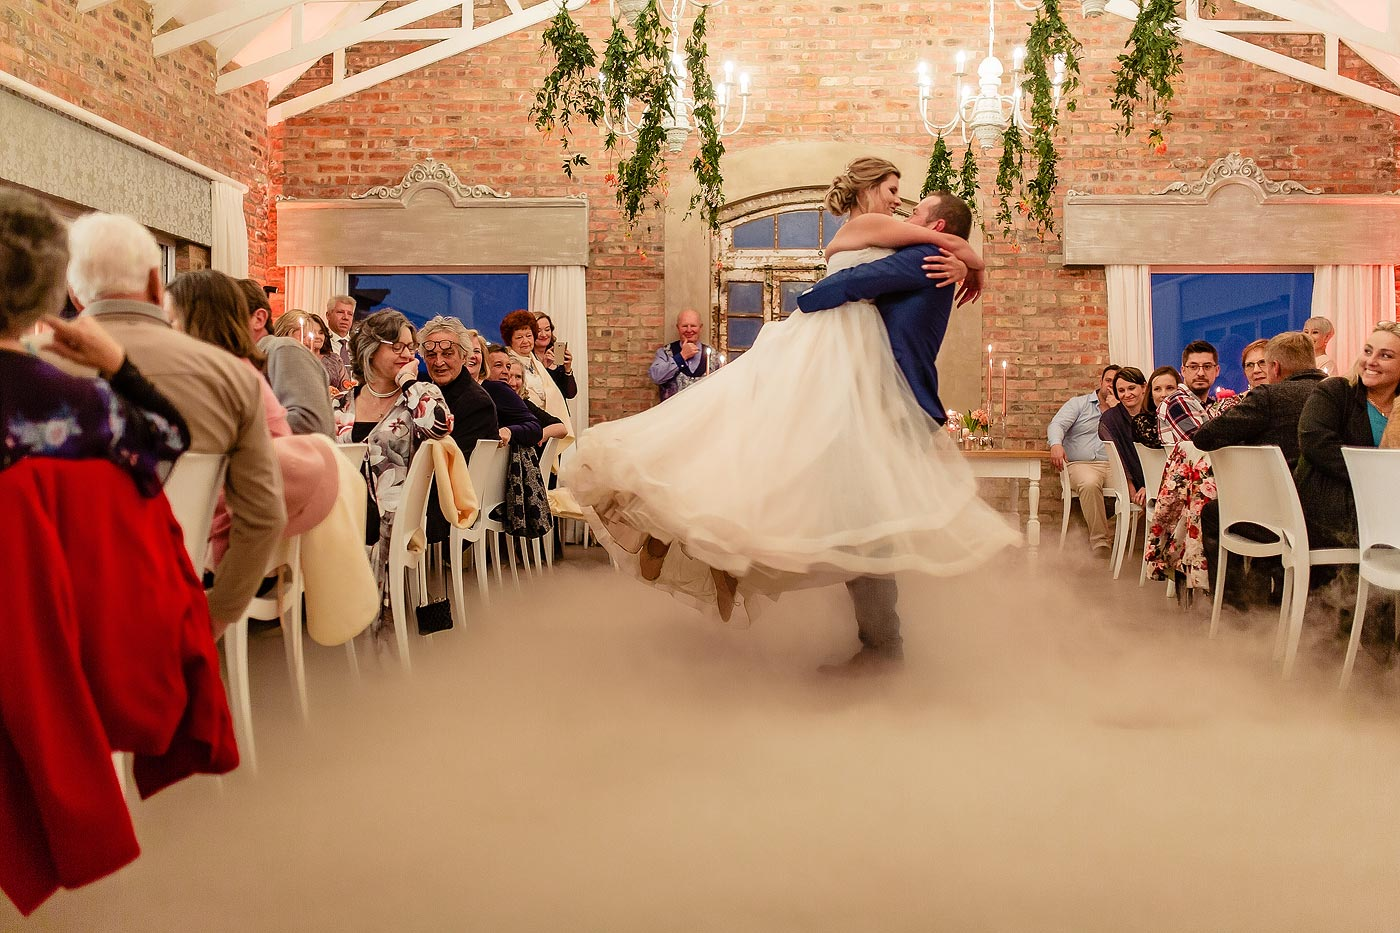 Smoke machine on the dancefloor during the wedding first dance in the Garden Route, South Africa.